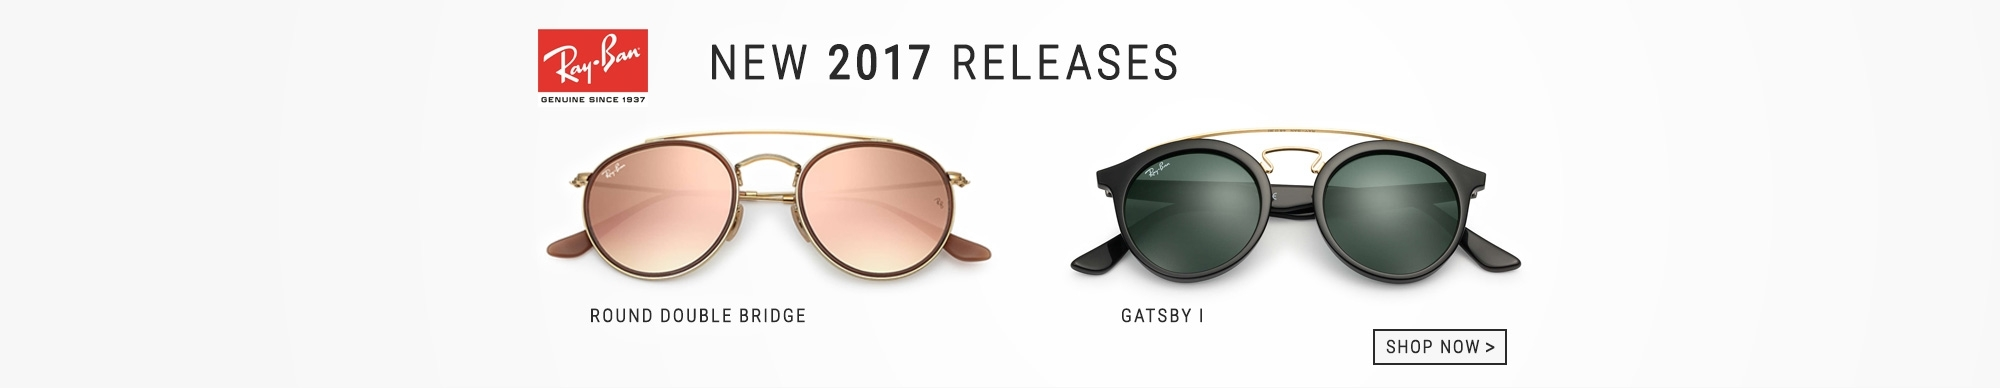 New Ray-Ban Releases, Gatsby, Round Double Bridge May 2017